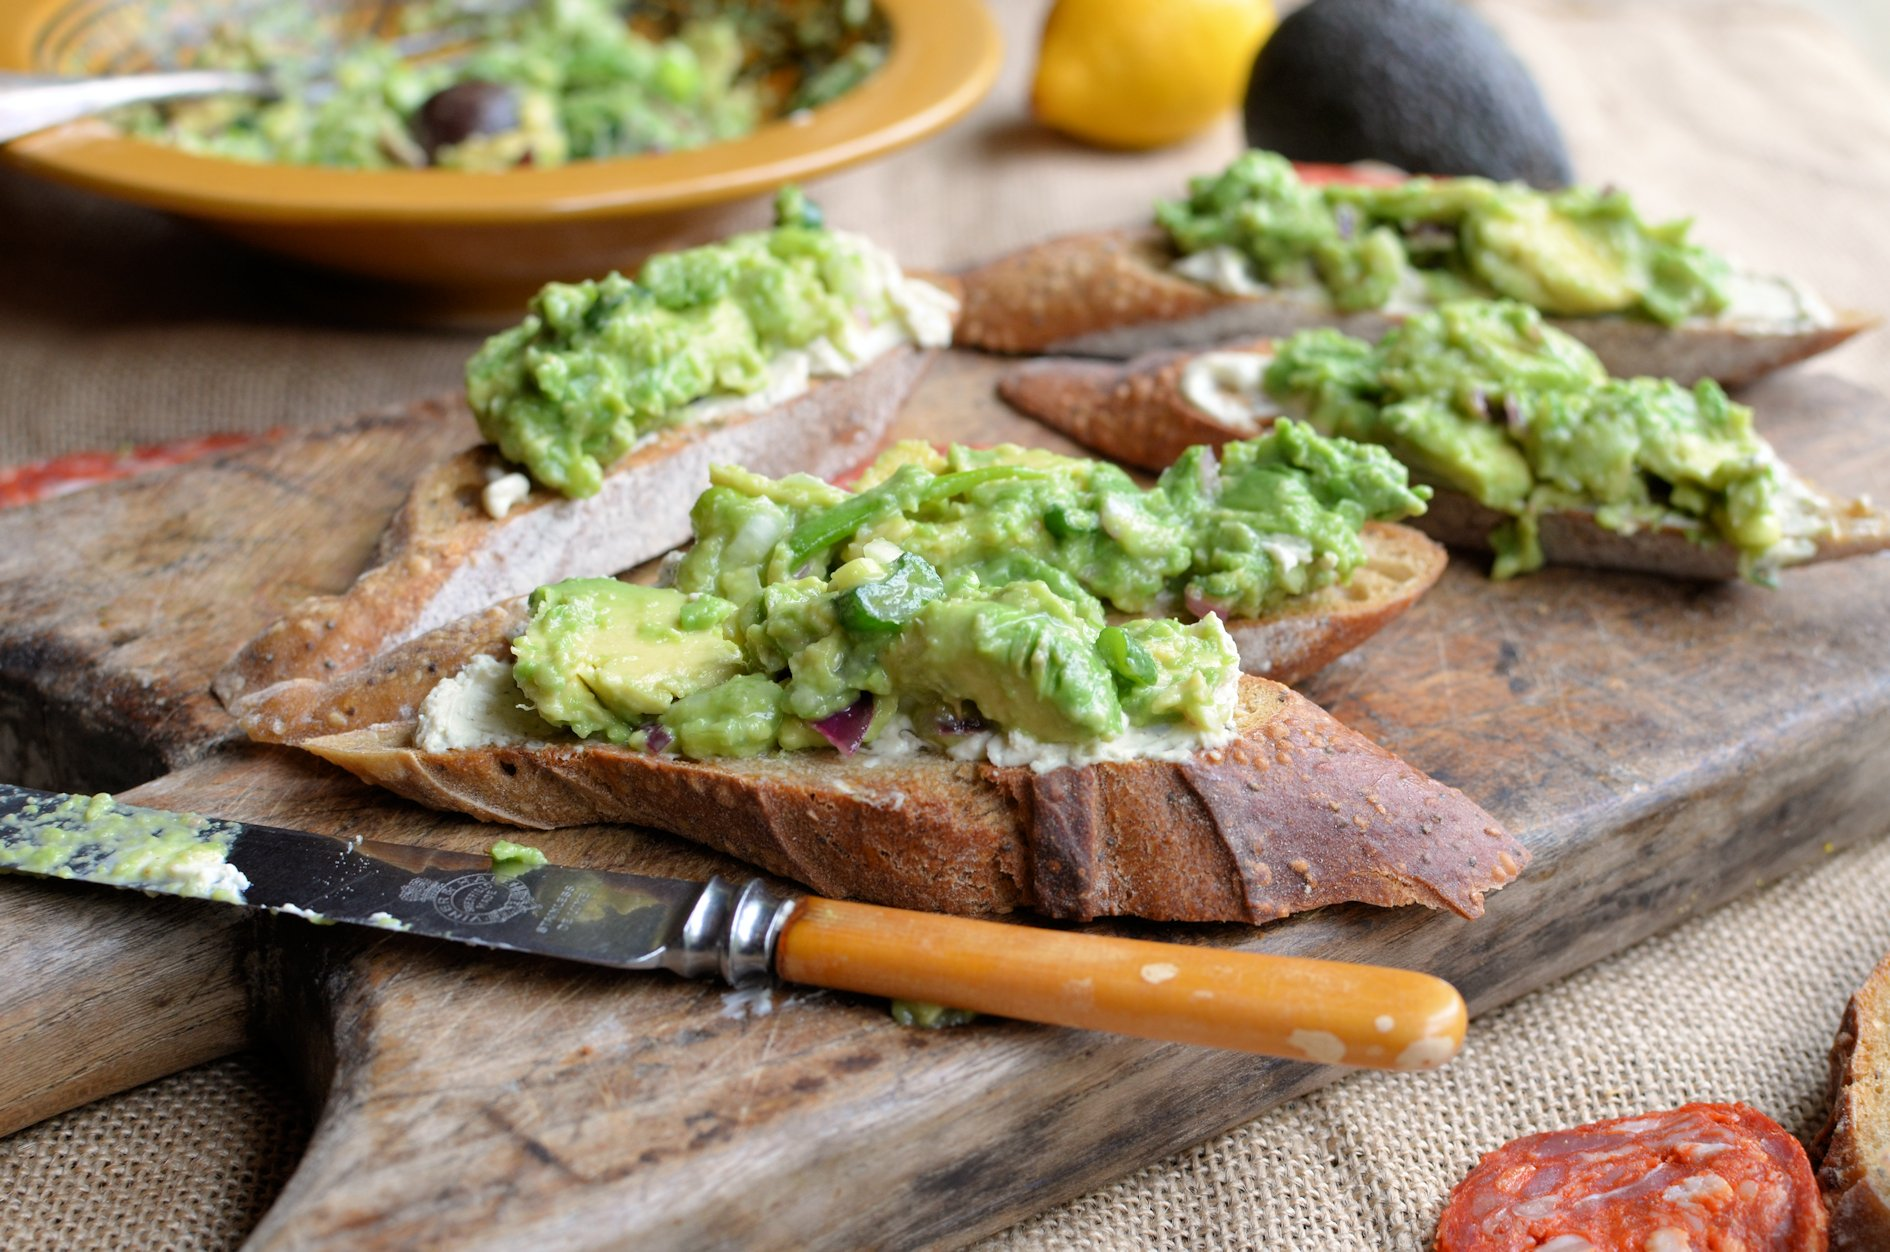 Avocado Love South African Style Guacamole And Cream